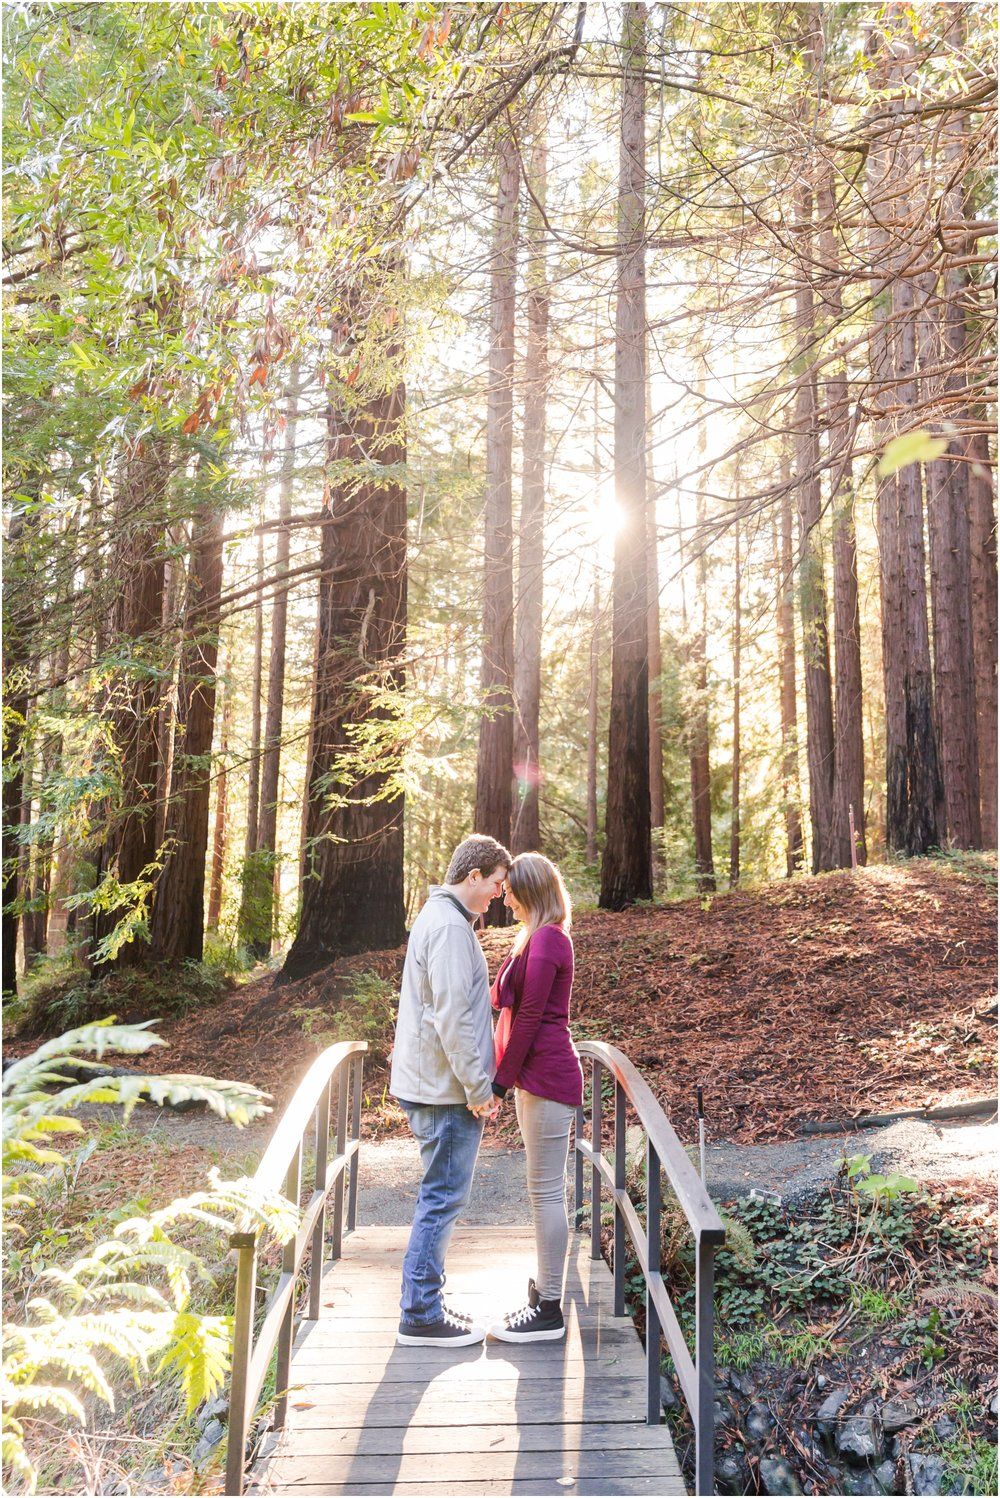 Engagement photos by Briana Calderon Photography based in the Greater Seattle & Tacoma, WA_0636.jpg